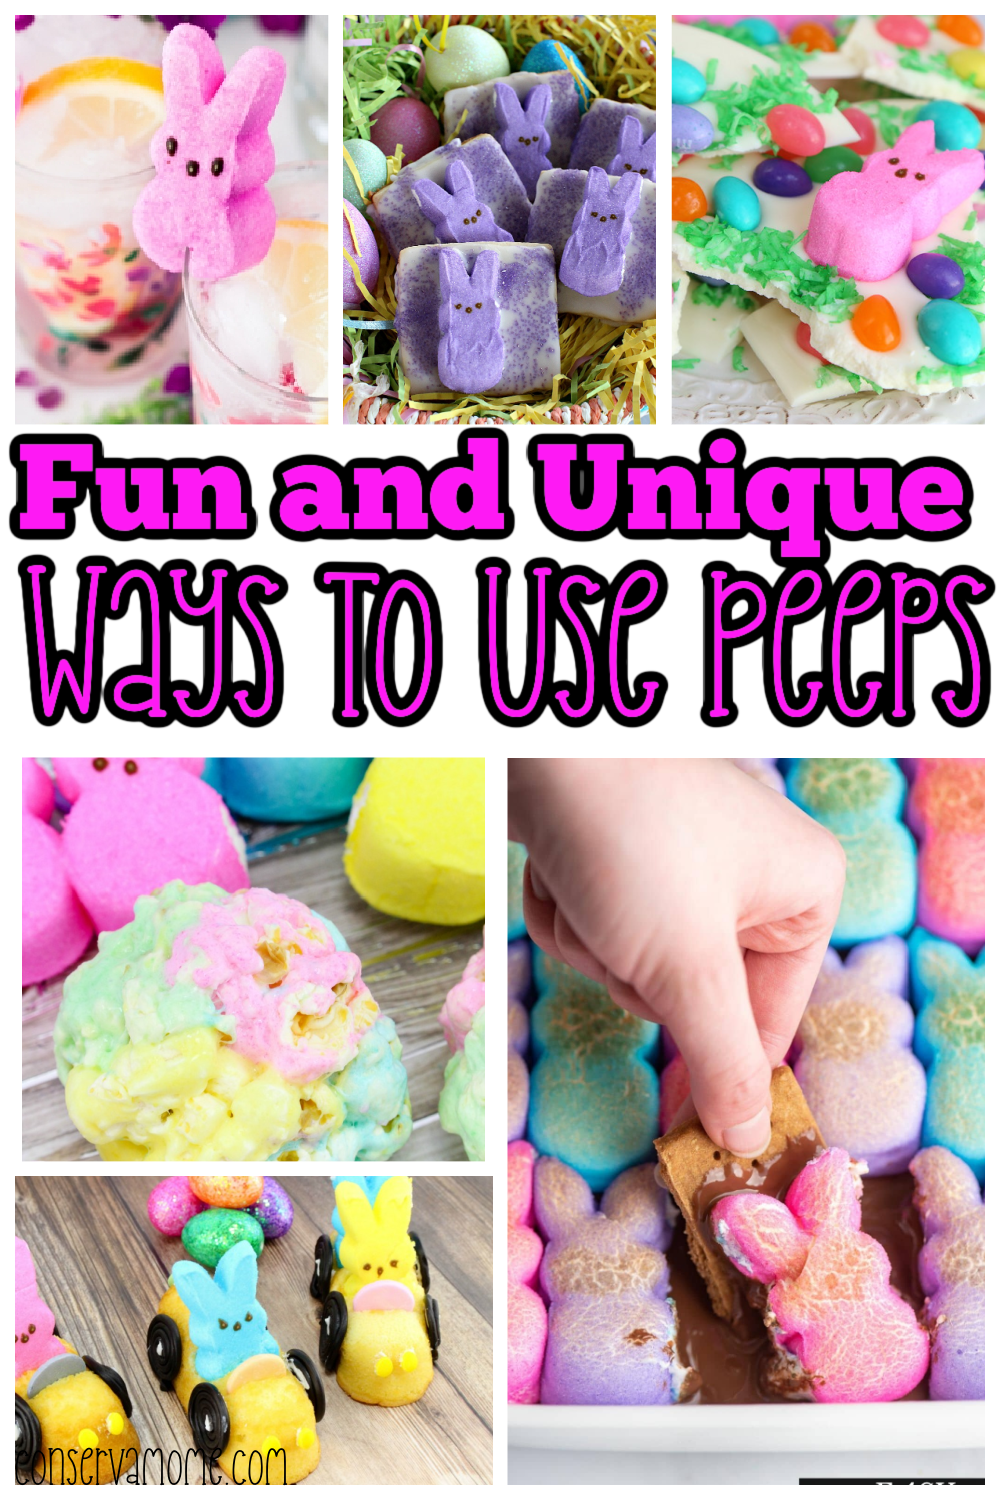 Fun and Unique Ways To Use Peeps